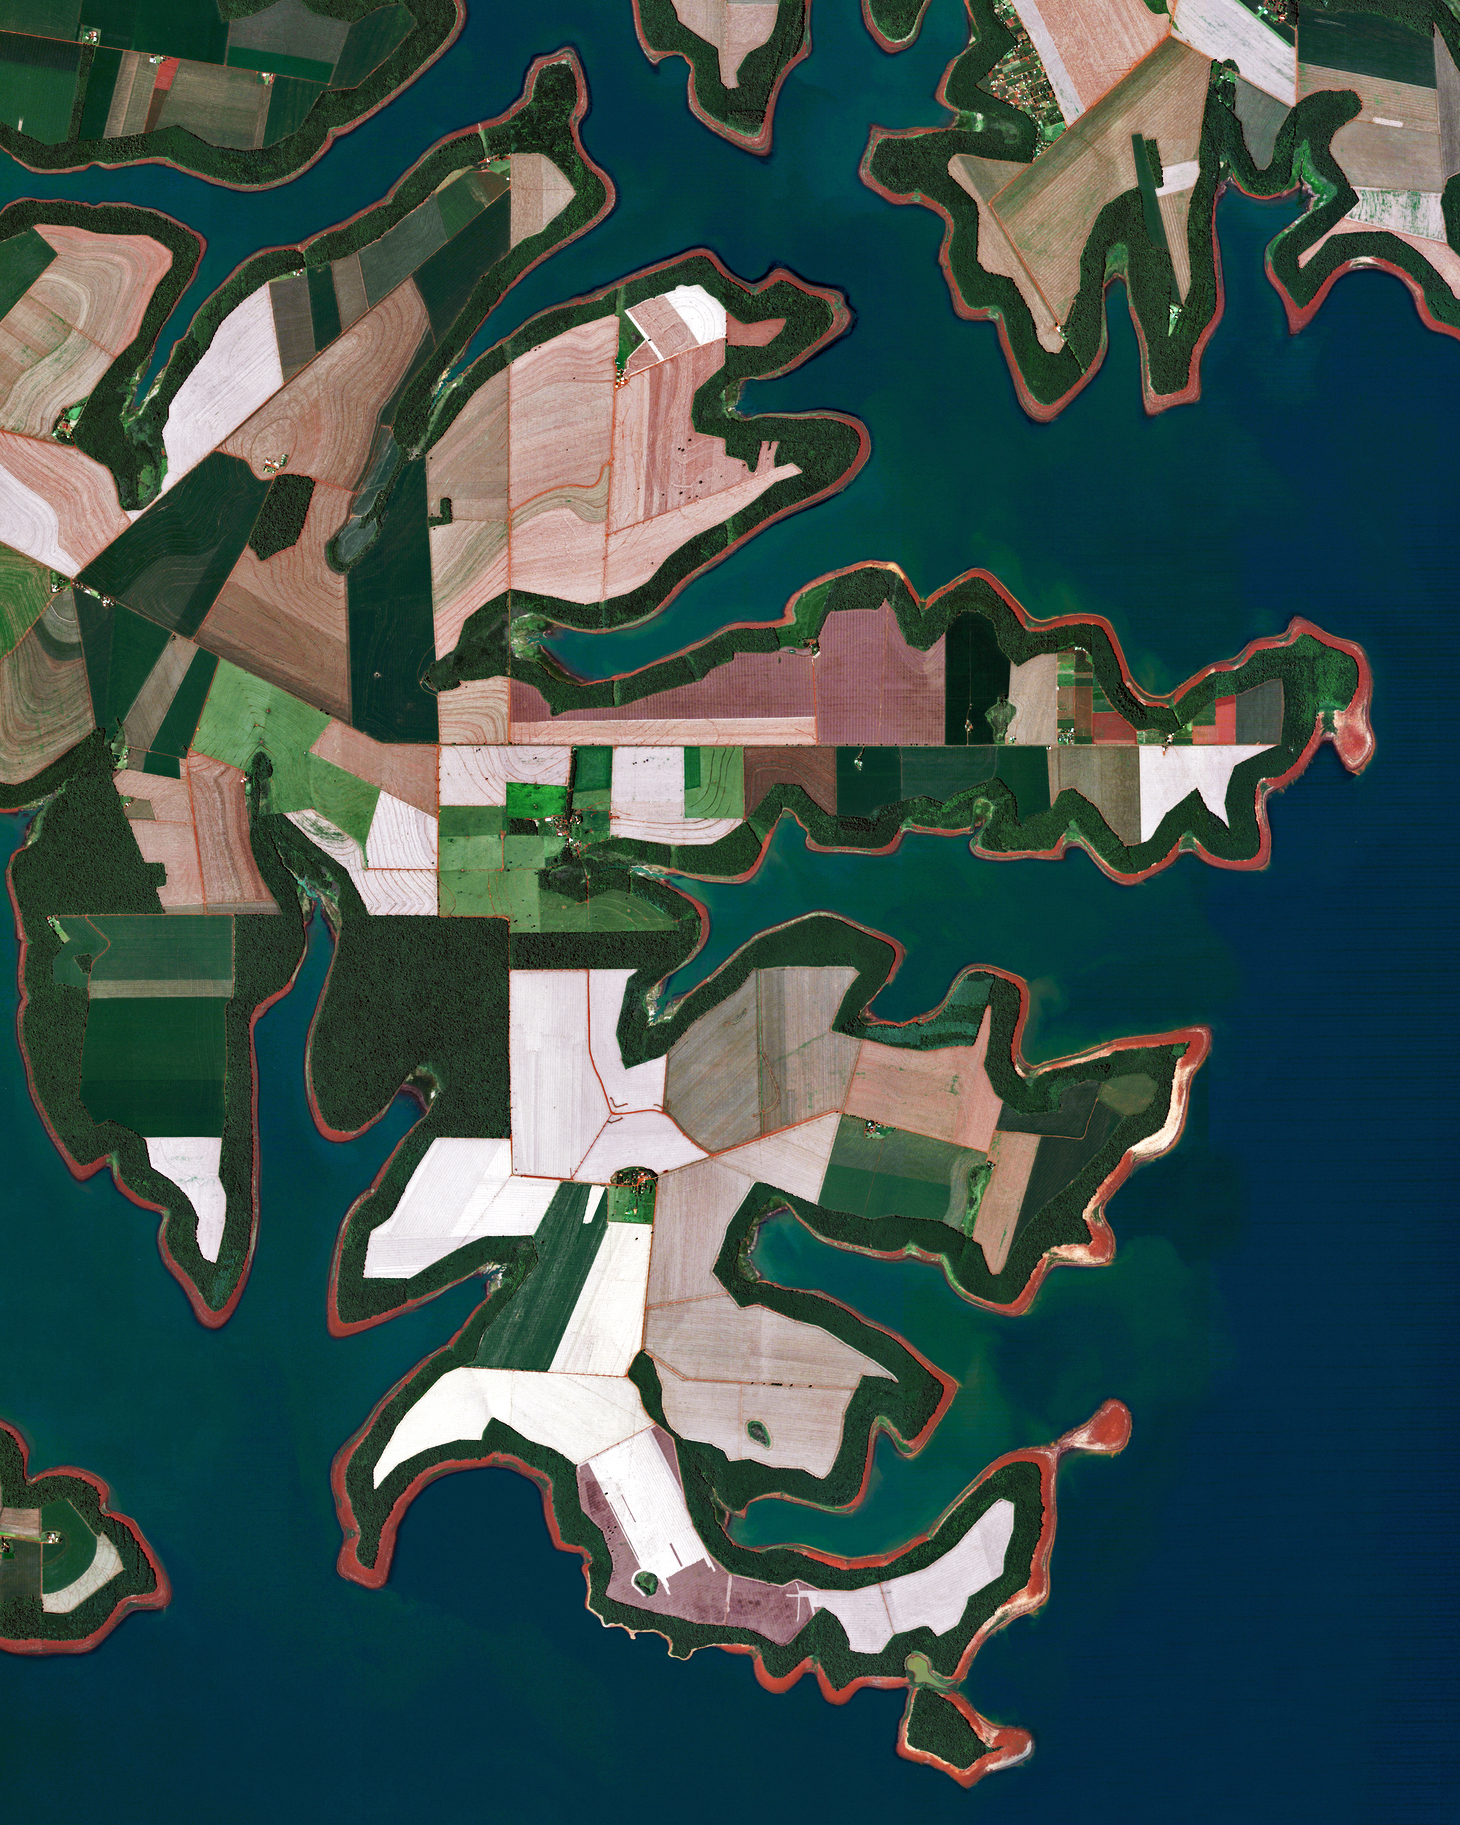 """Agricultural fields line the shores of the Itaipu Reservoir — a body of water that forms the border between Brazil and Paraguay. The area's tropical climate makes it an ideal place to grow sugarcane, coffee, tea, and cotton.  25°18'20.3""""S, 54°25'12.6""""W  Source imagery: DigitalGlobe"""